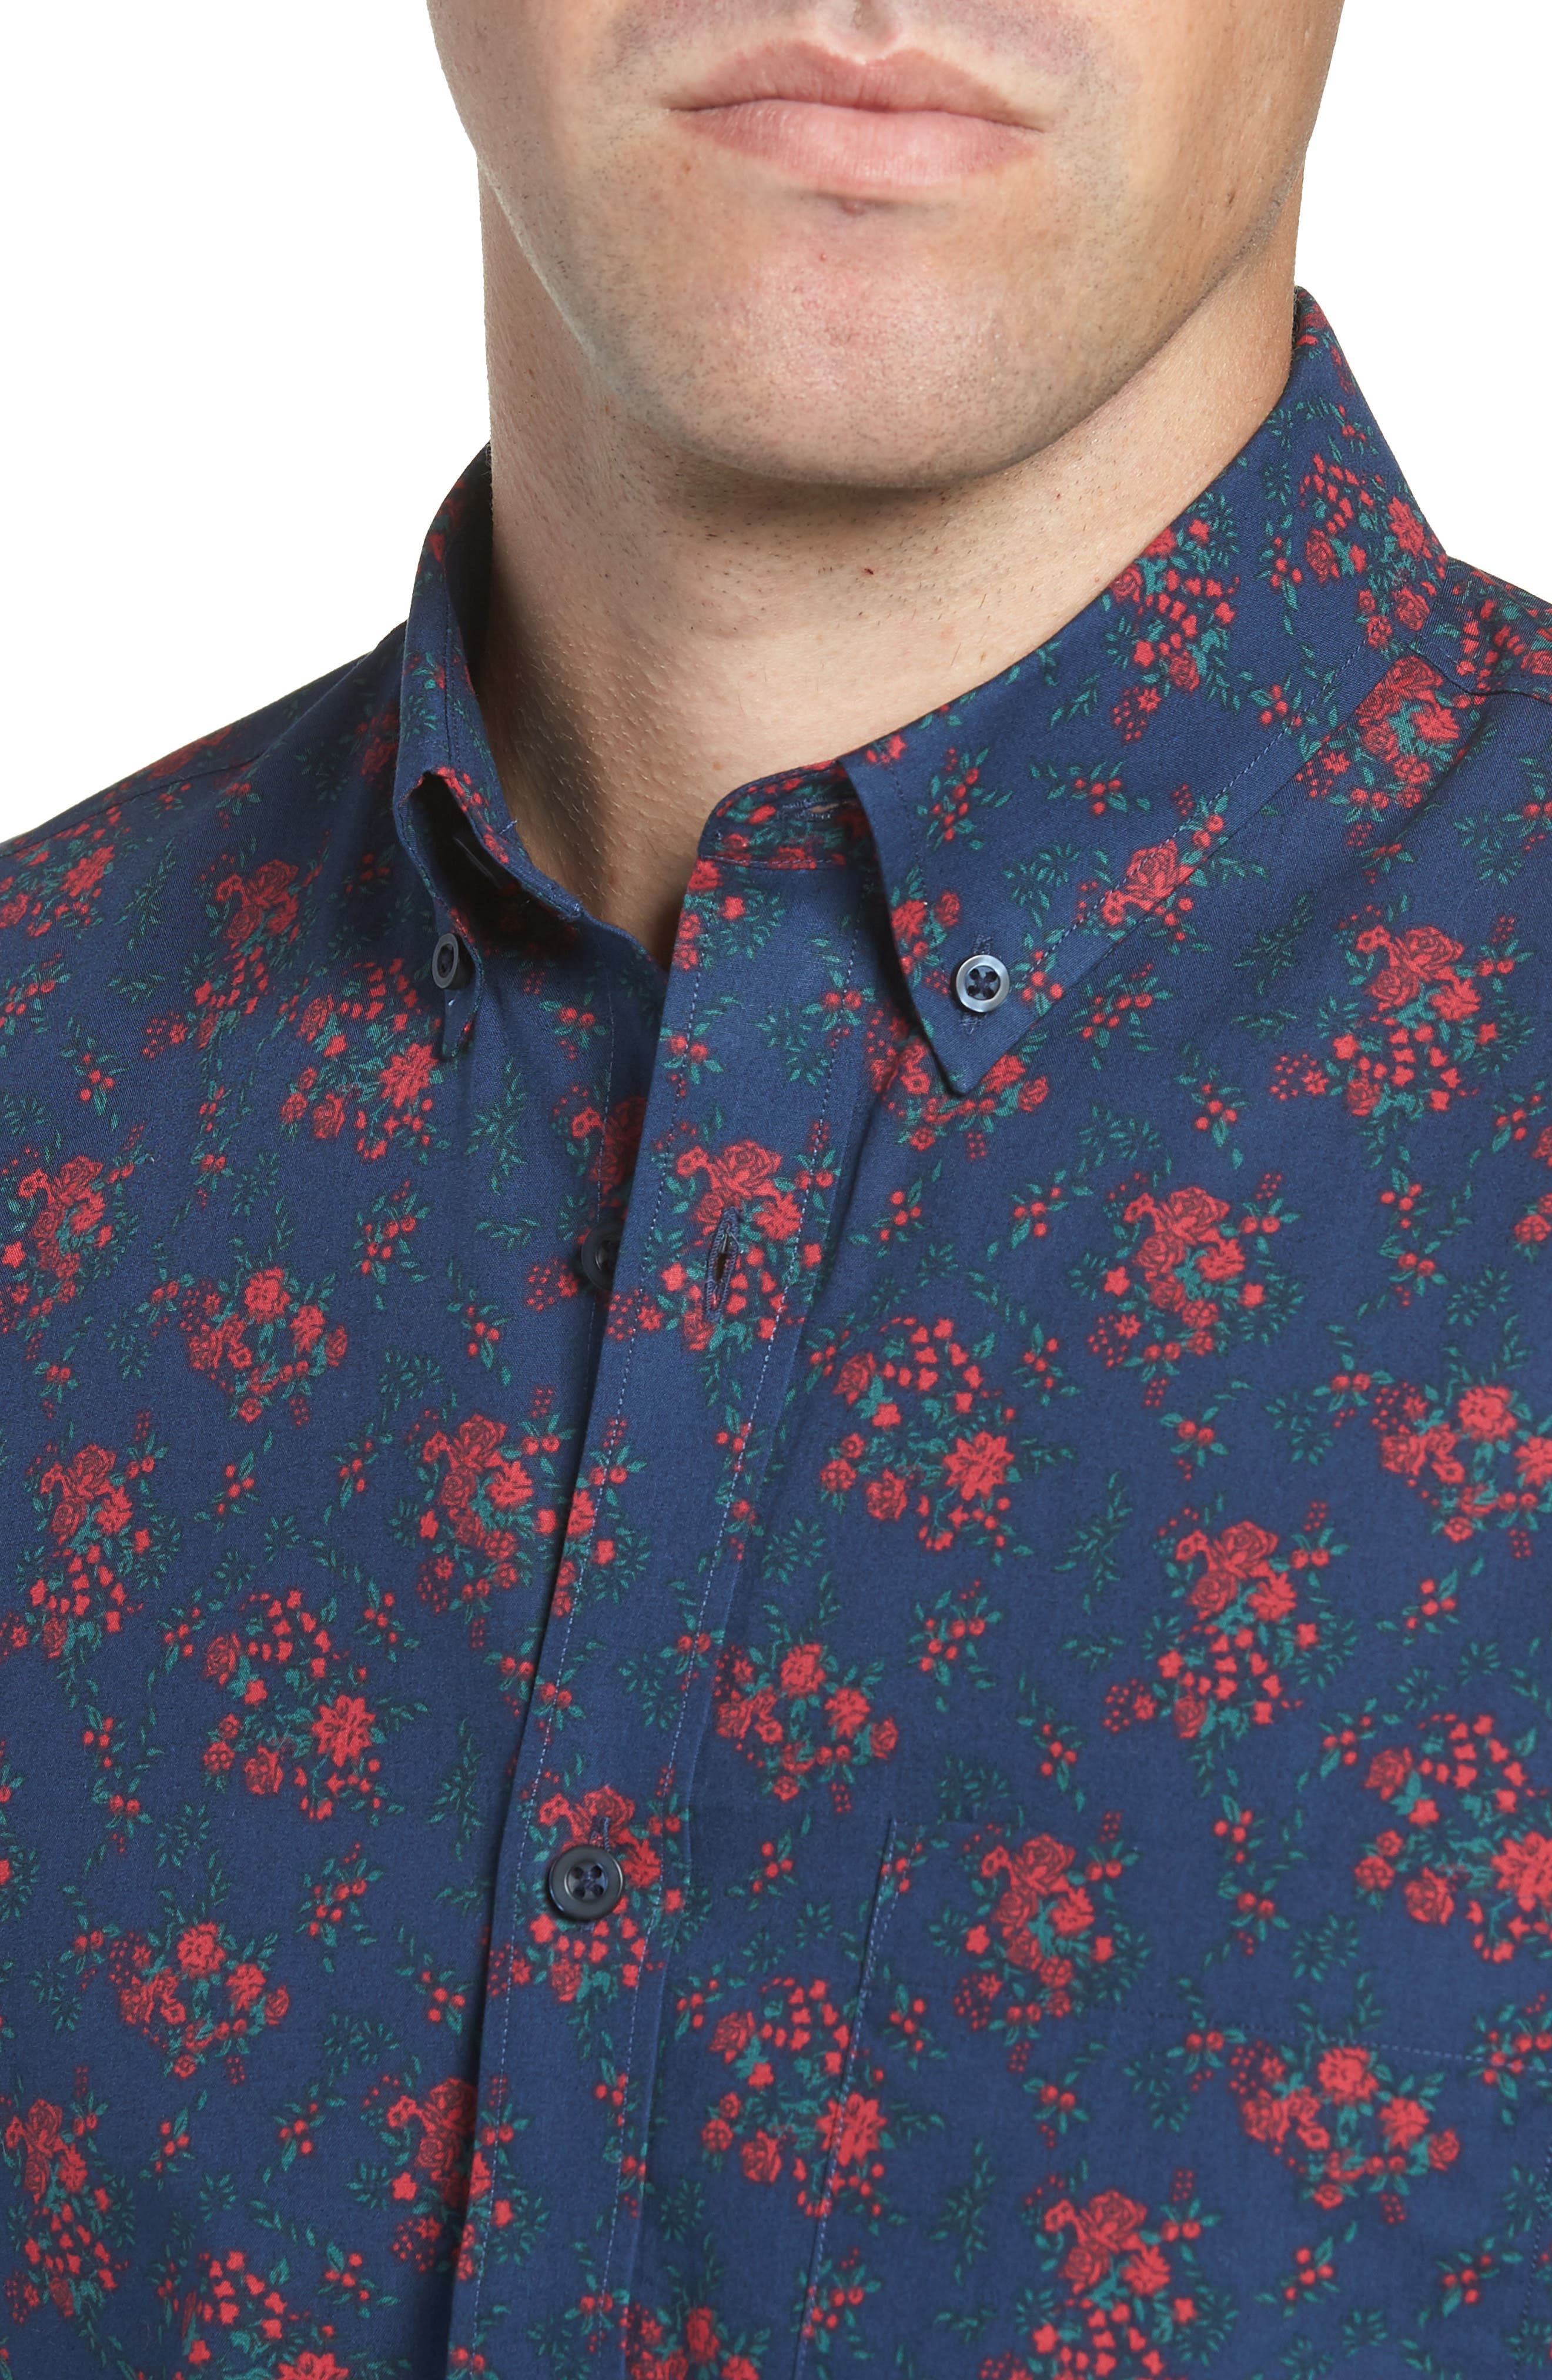 Slim Fit Print No-Iron Sport Shirt,                             Alternate thumbnail 2, color,                             NAVY NIGHT RED FLORAL